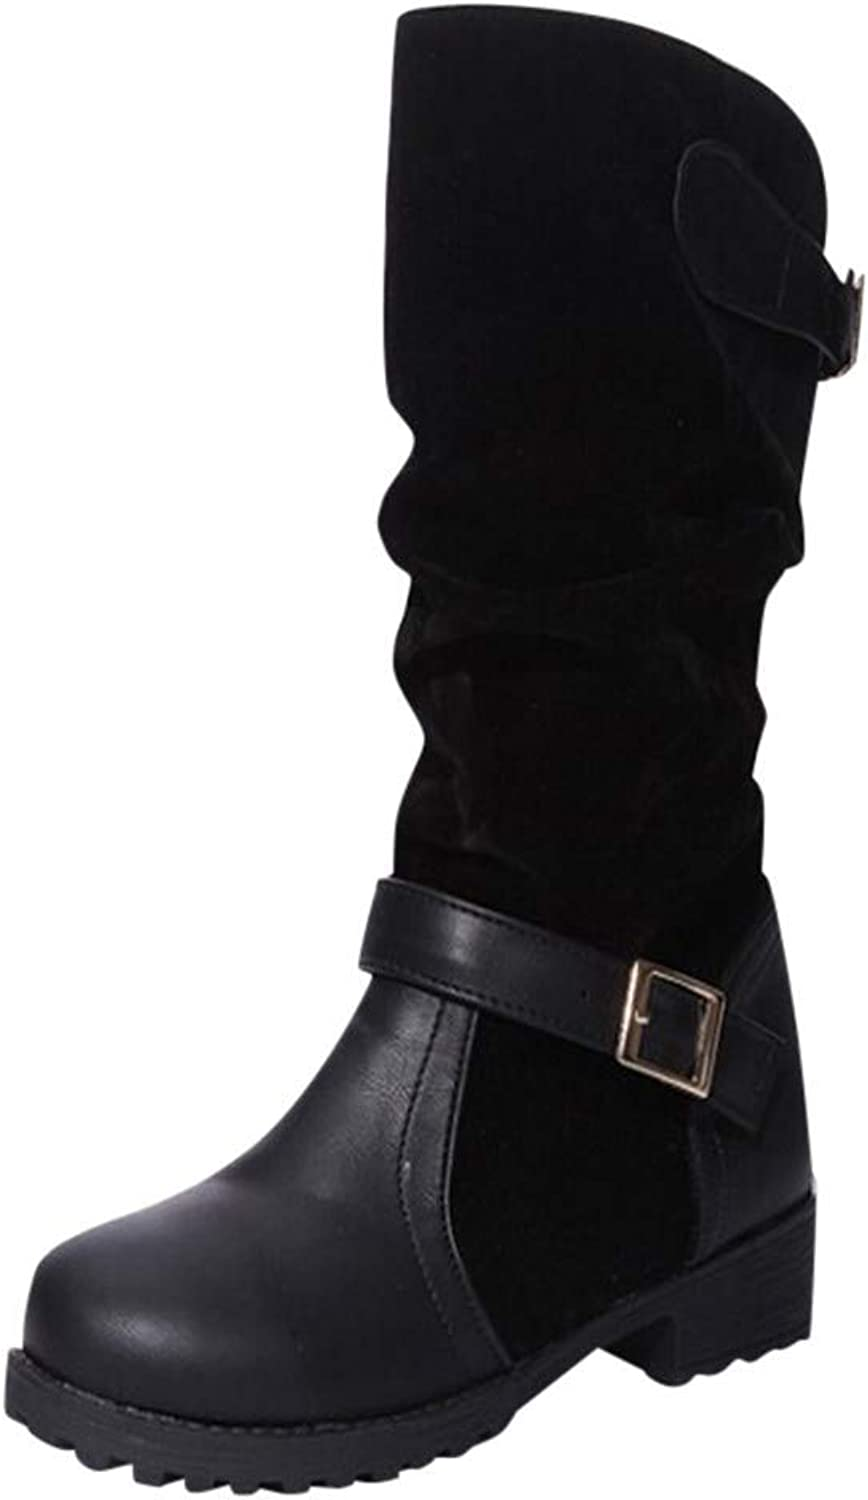 Leather Knee High Boots Women Extra Wide Buckle-Strap Flat Casual shoes